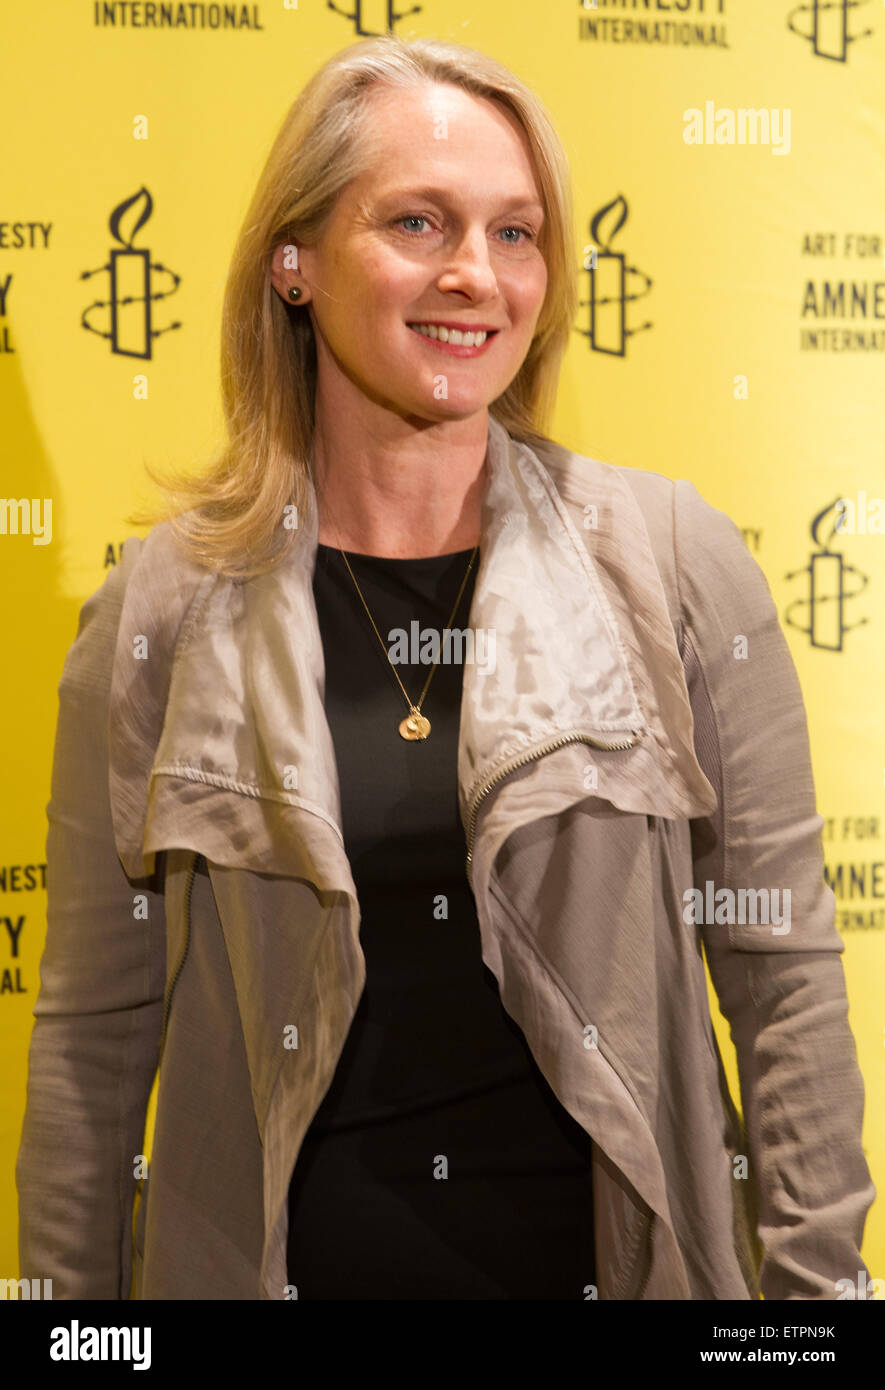 amnesty international s 50th annual general meeting arrivals stock